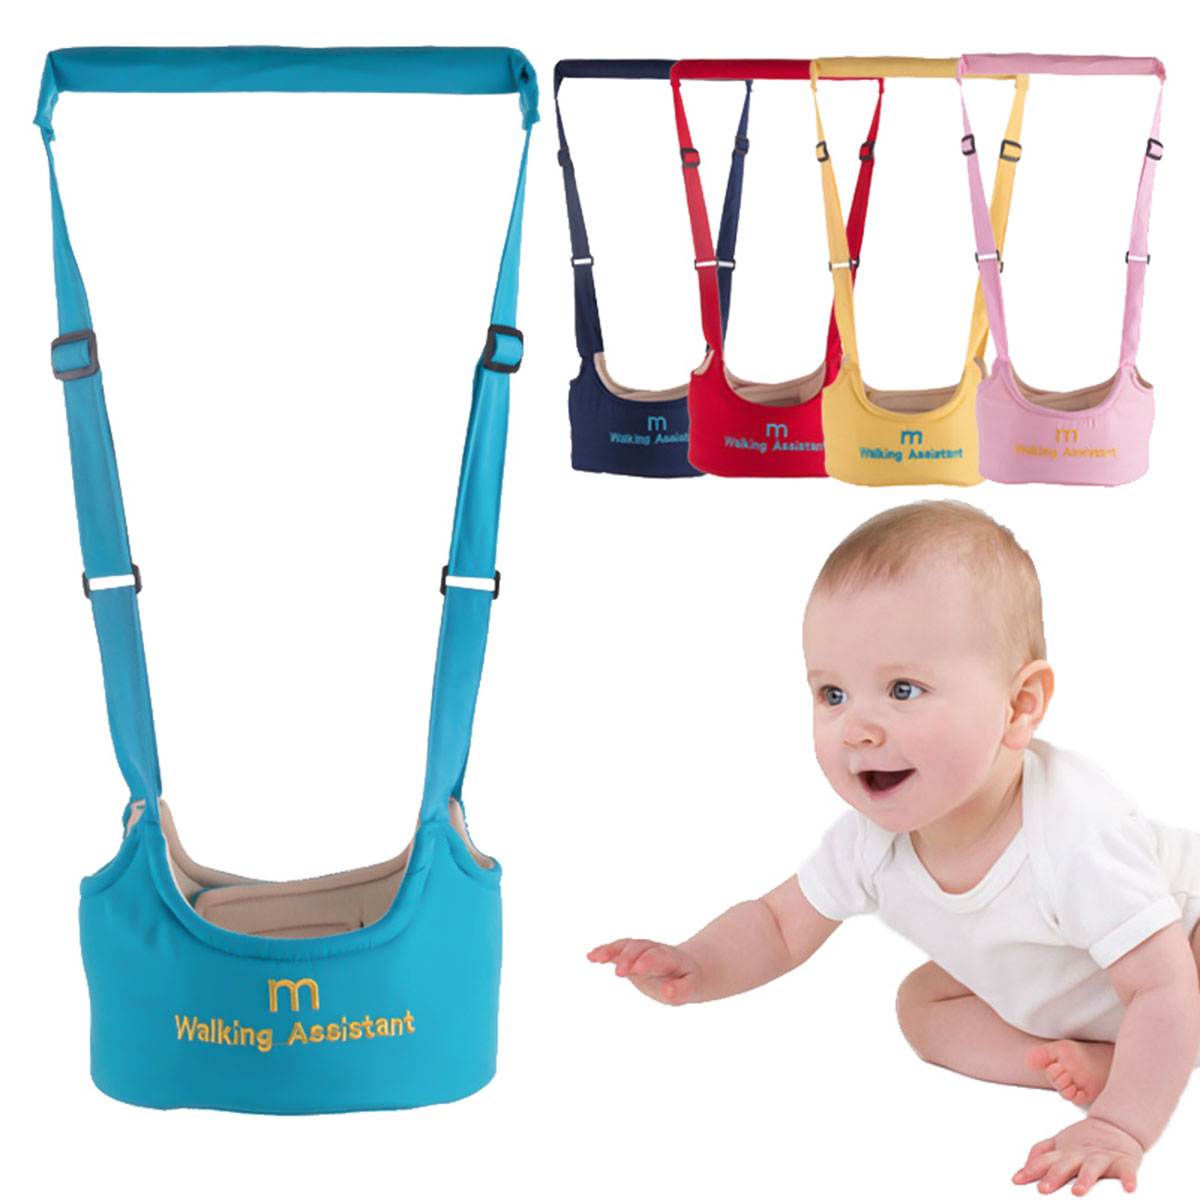 New Arrival Baby Walker Baby Harness Assistant Toddler Leash For Kids Learning Walking Baby Belt Child Safety Dropship